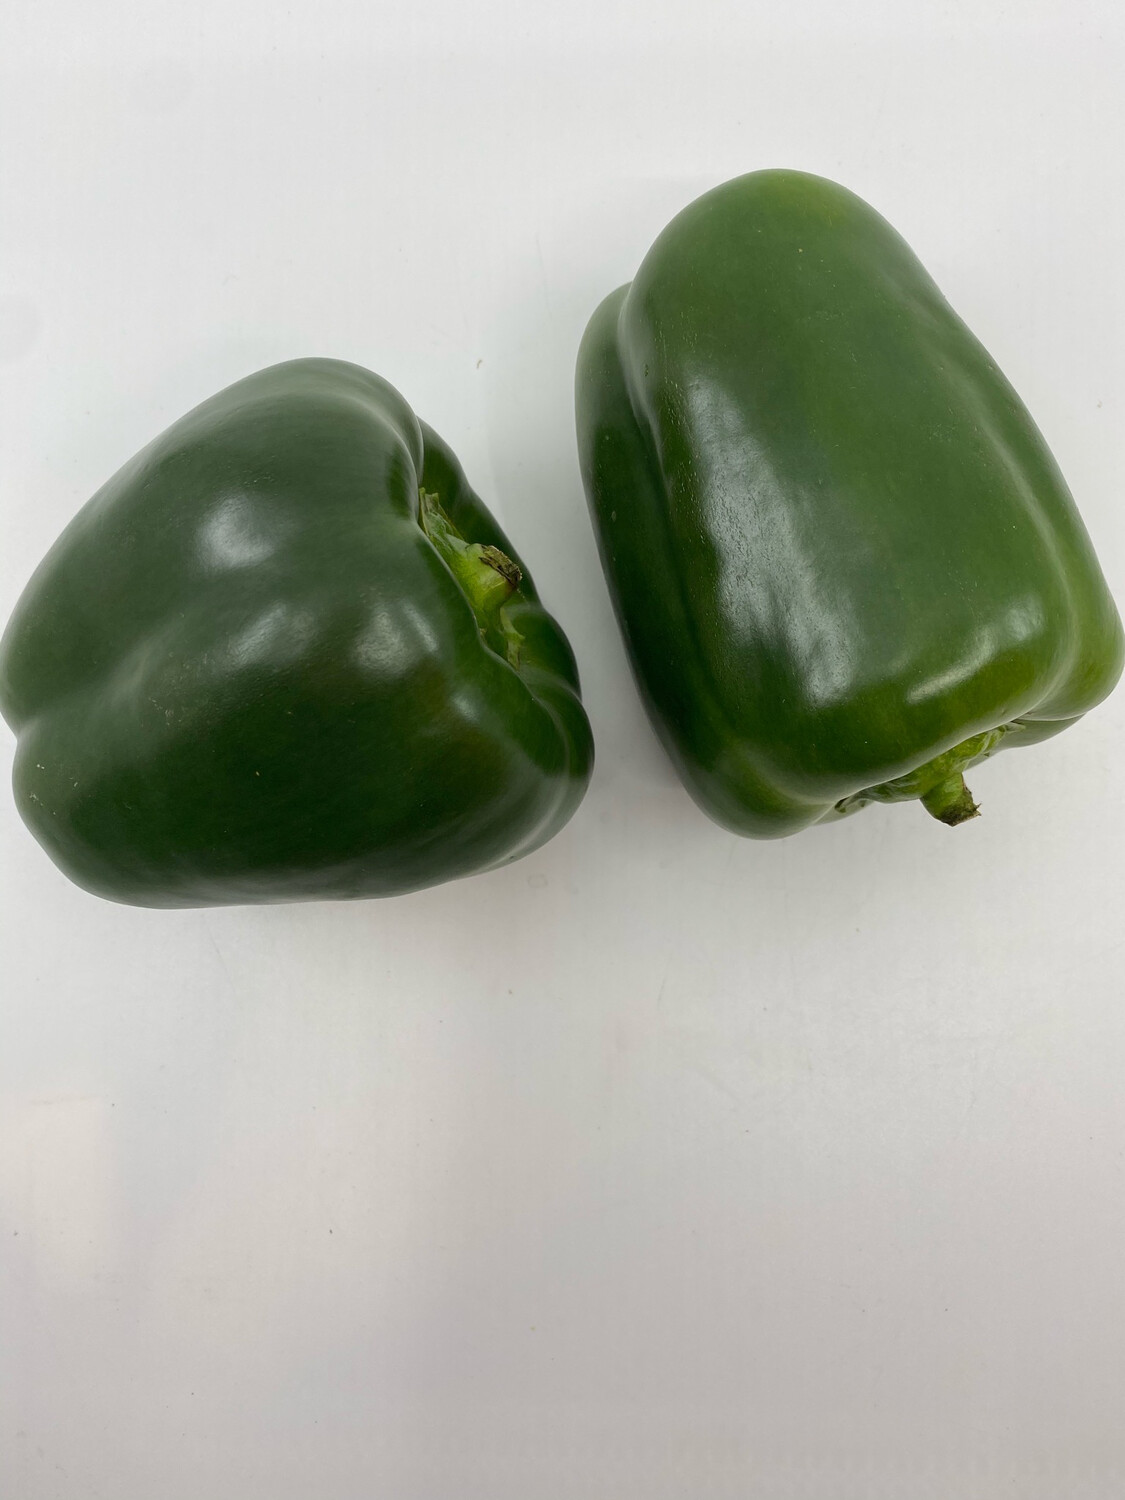 Green Peppers (1 lb)